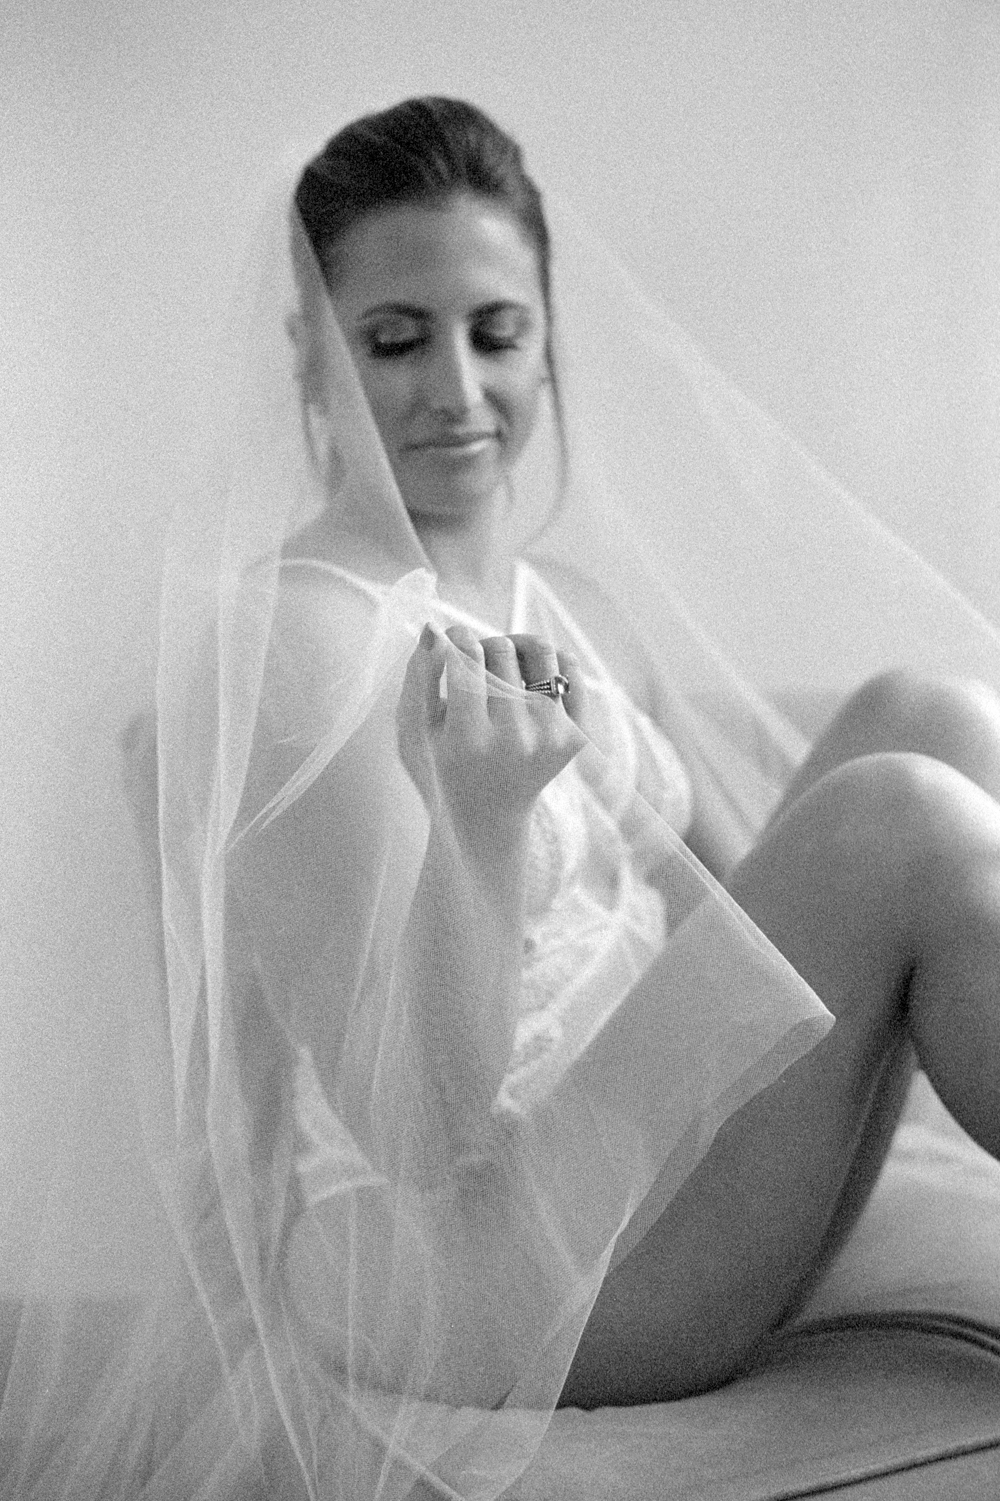 Christine-Gosch-Houston-boudoir-photographer-film-photography-fill-in-the-blank-wedding-photographer-3.jpg